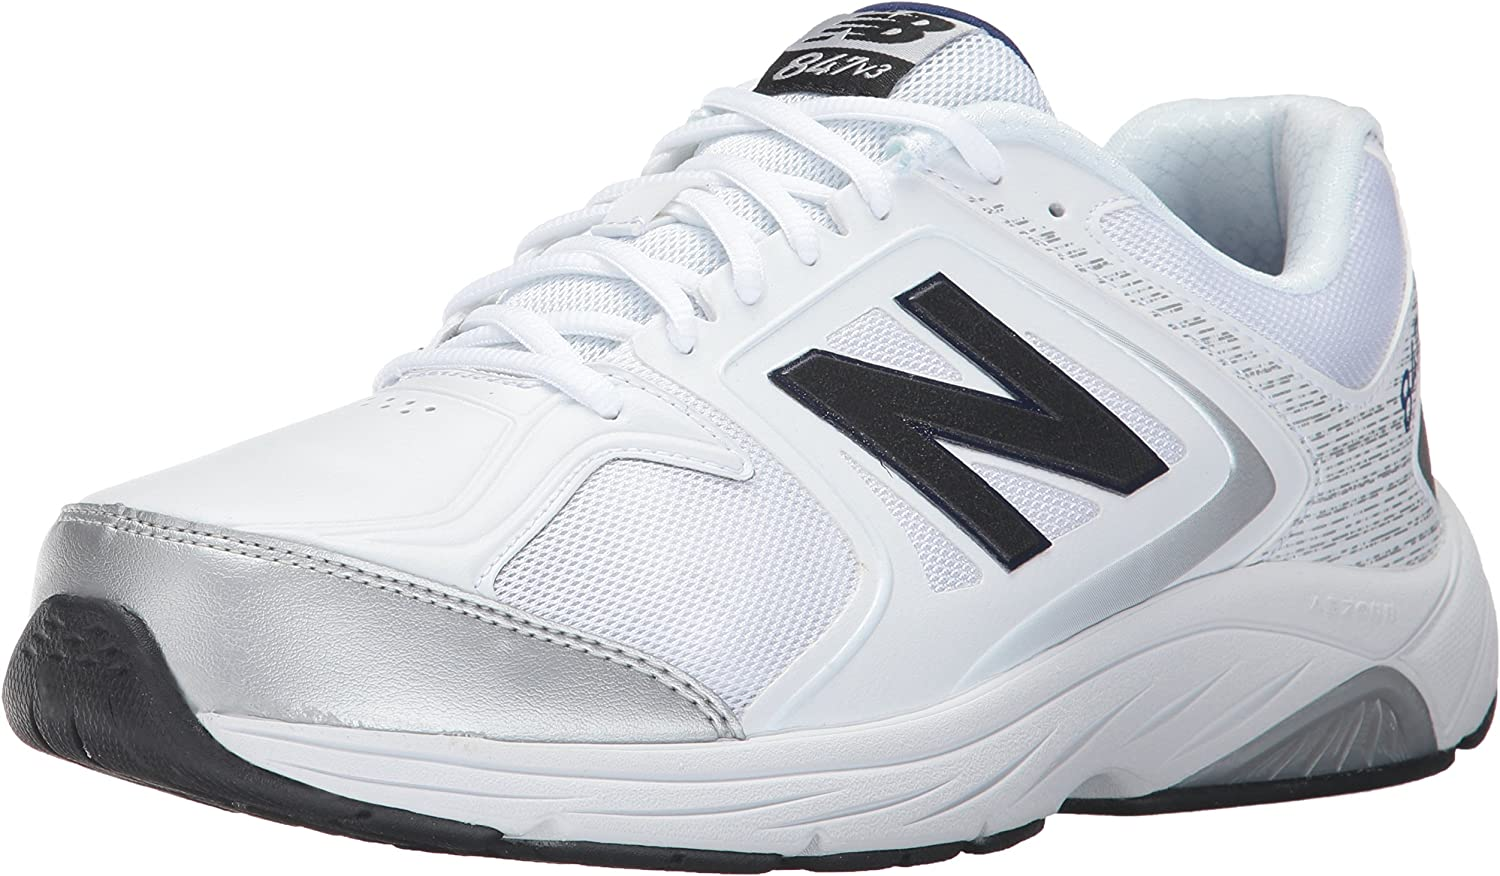 New Balance Men's 847V3 Walking shoes